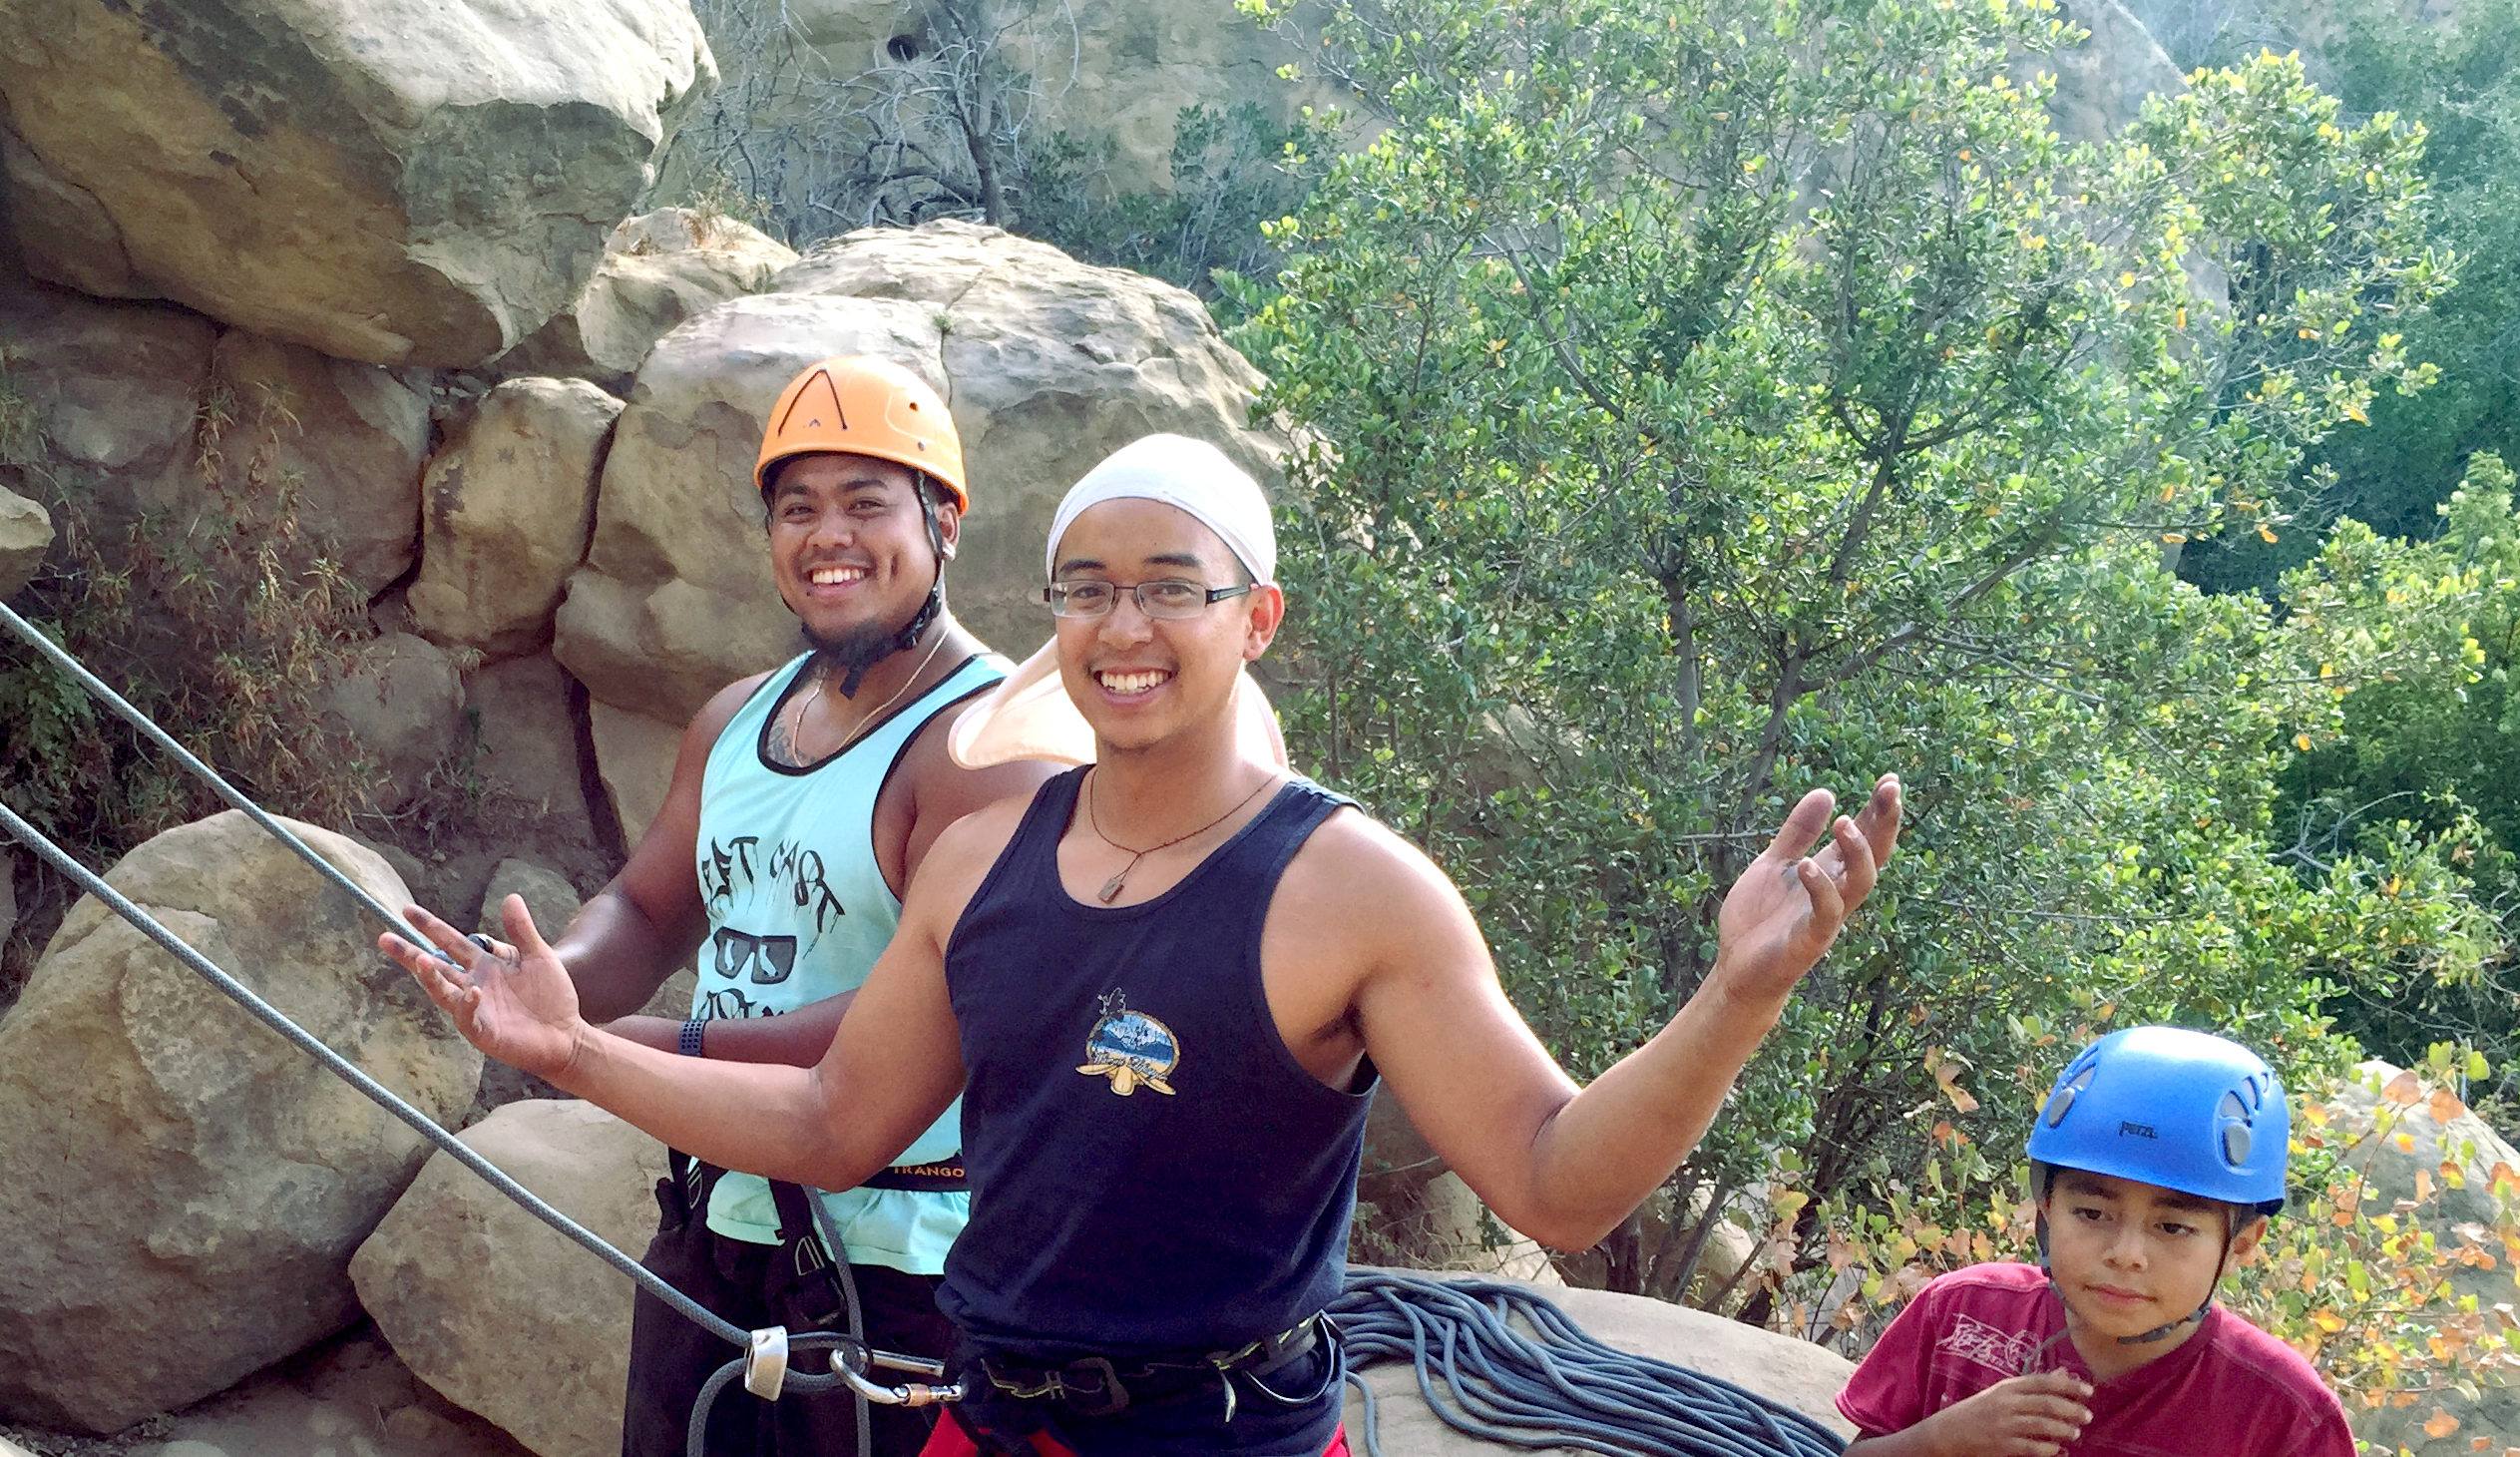 DeeJay and Jeremiah climbers